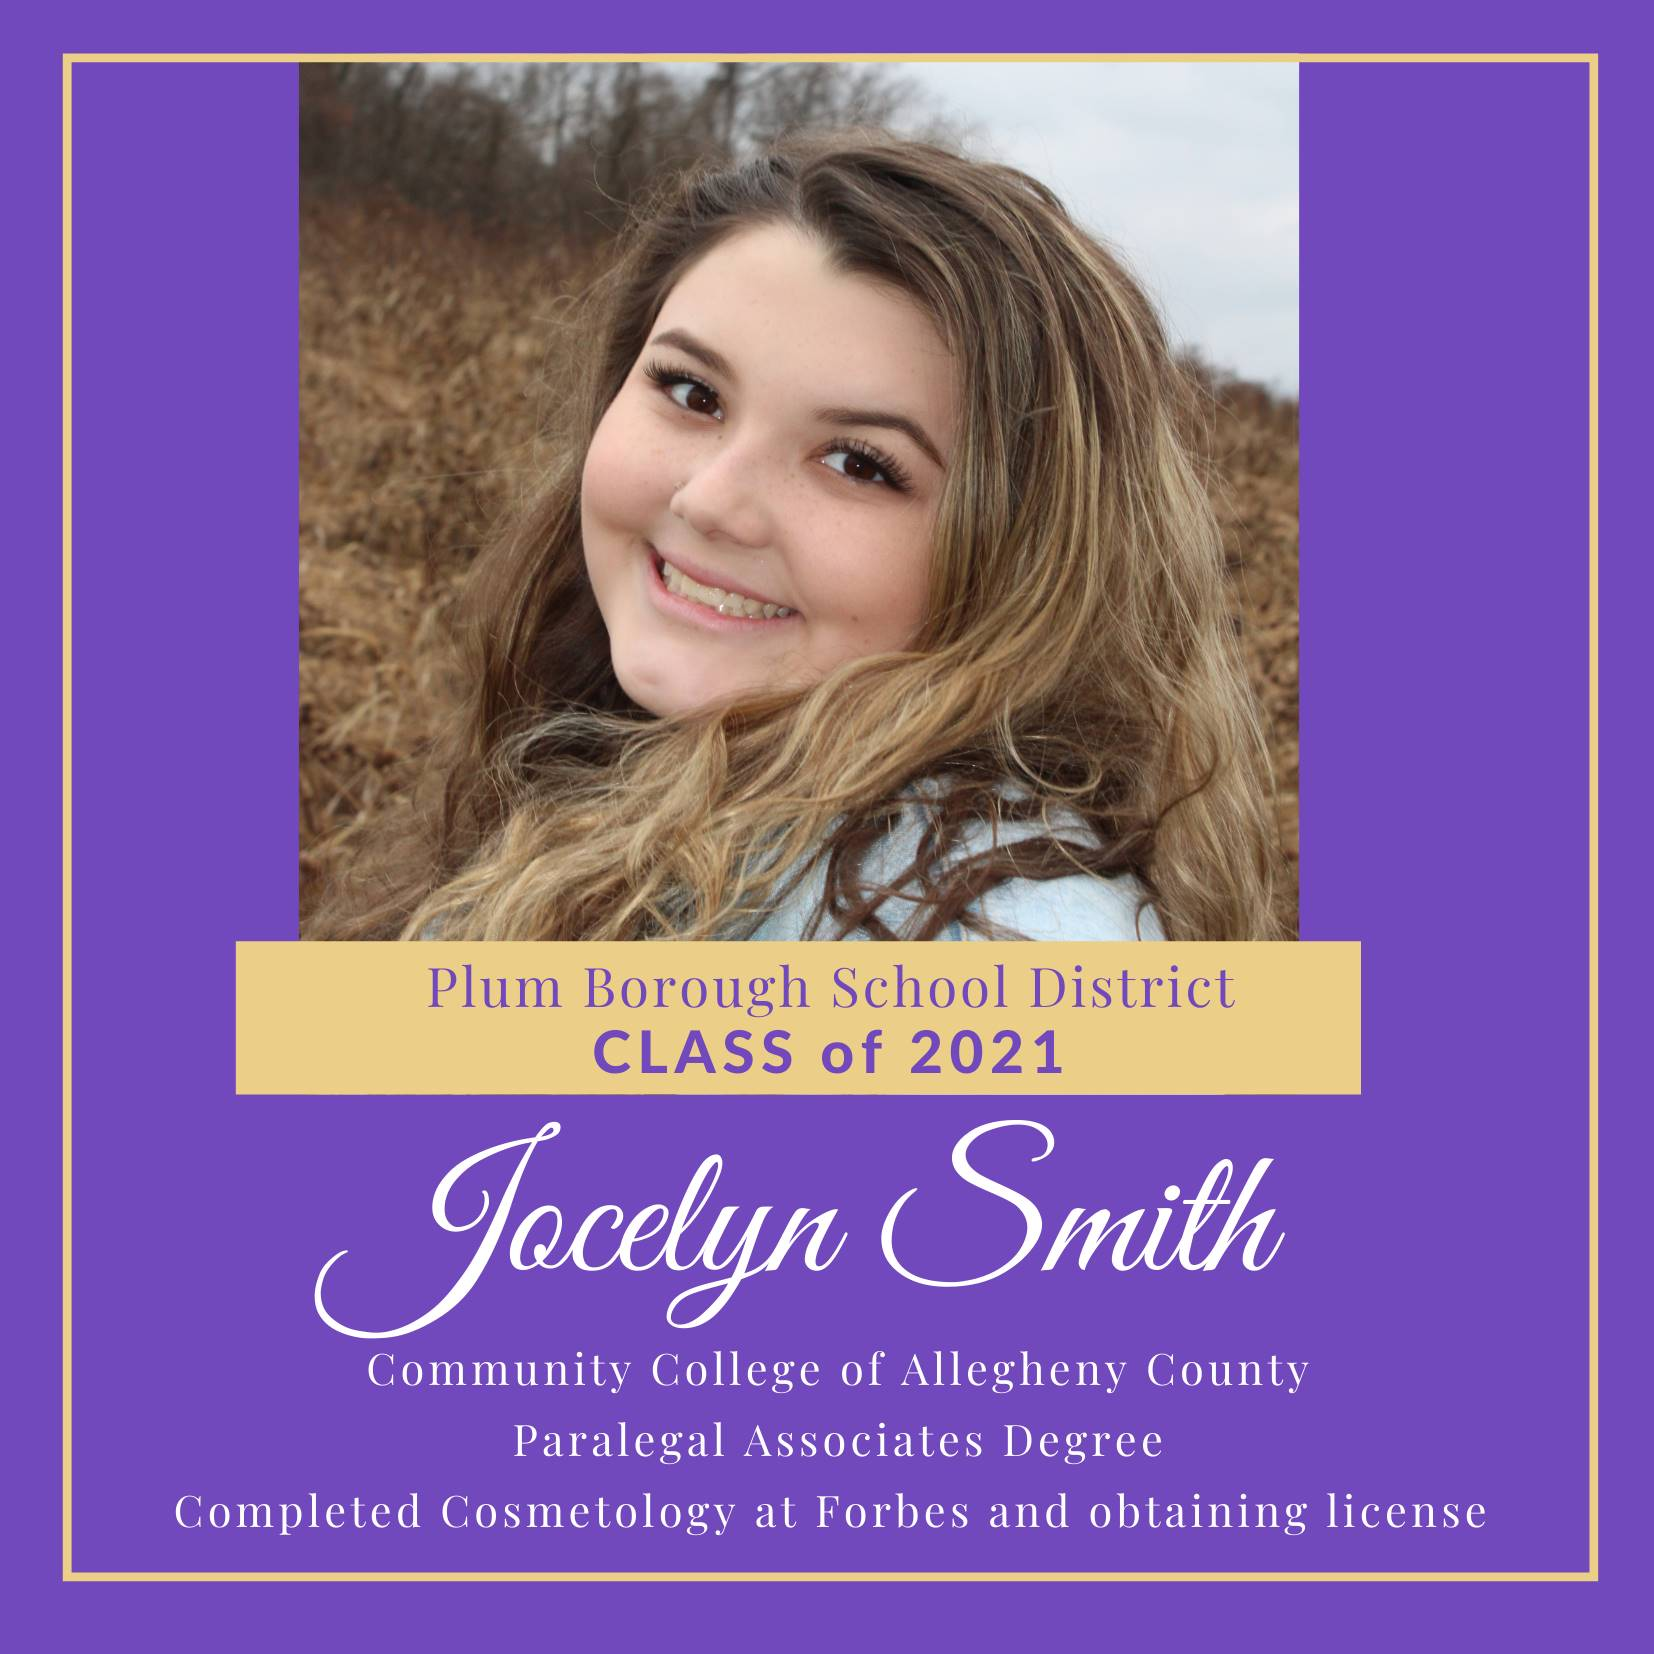 Congratulations to Jocelyn Smith, Class of 2021!